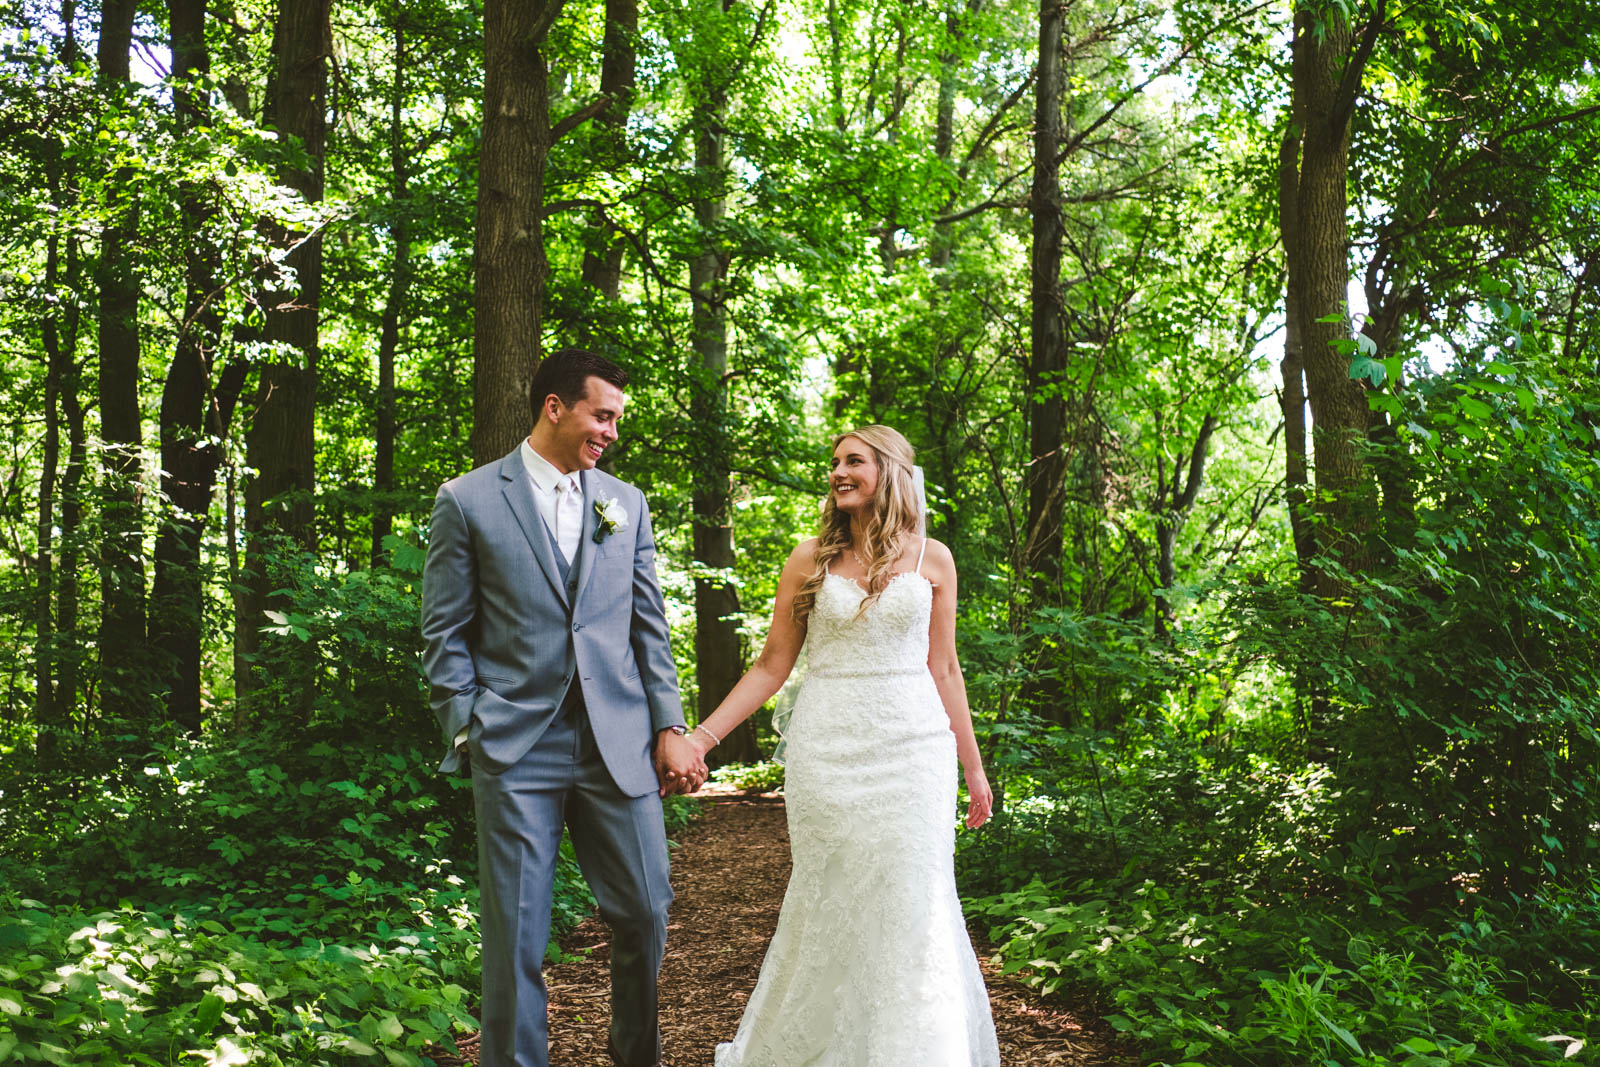 Bride and Groom at Winter Garden Park in Bowling Green Ohio on Wedding Day